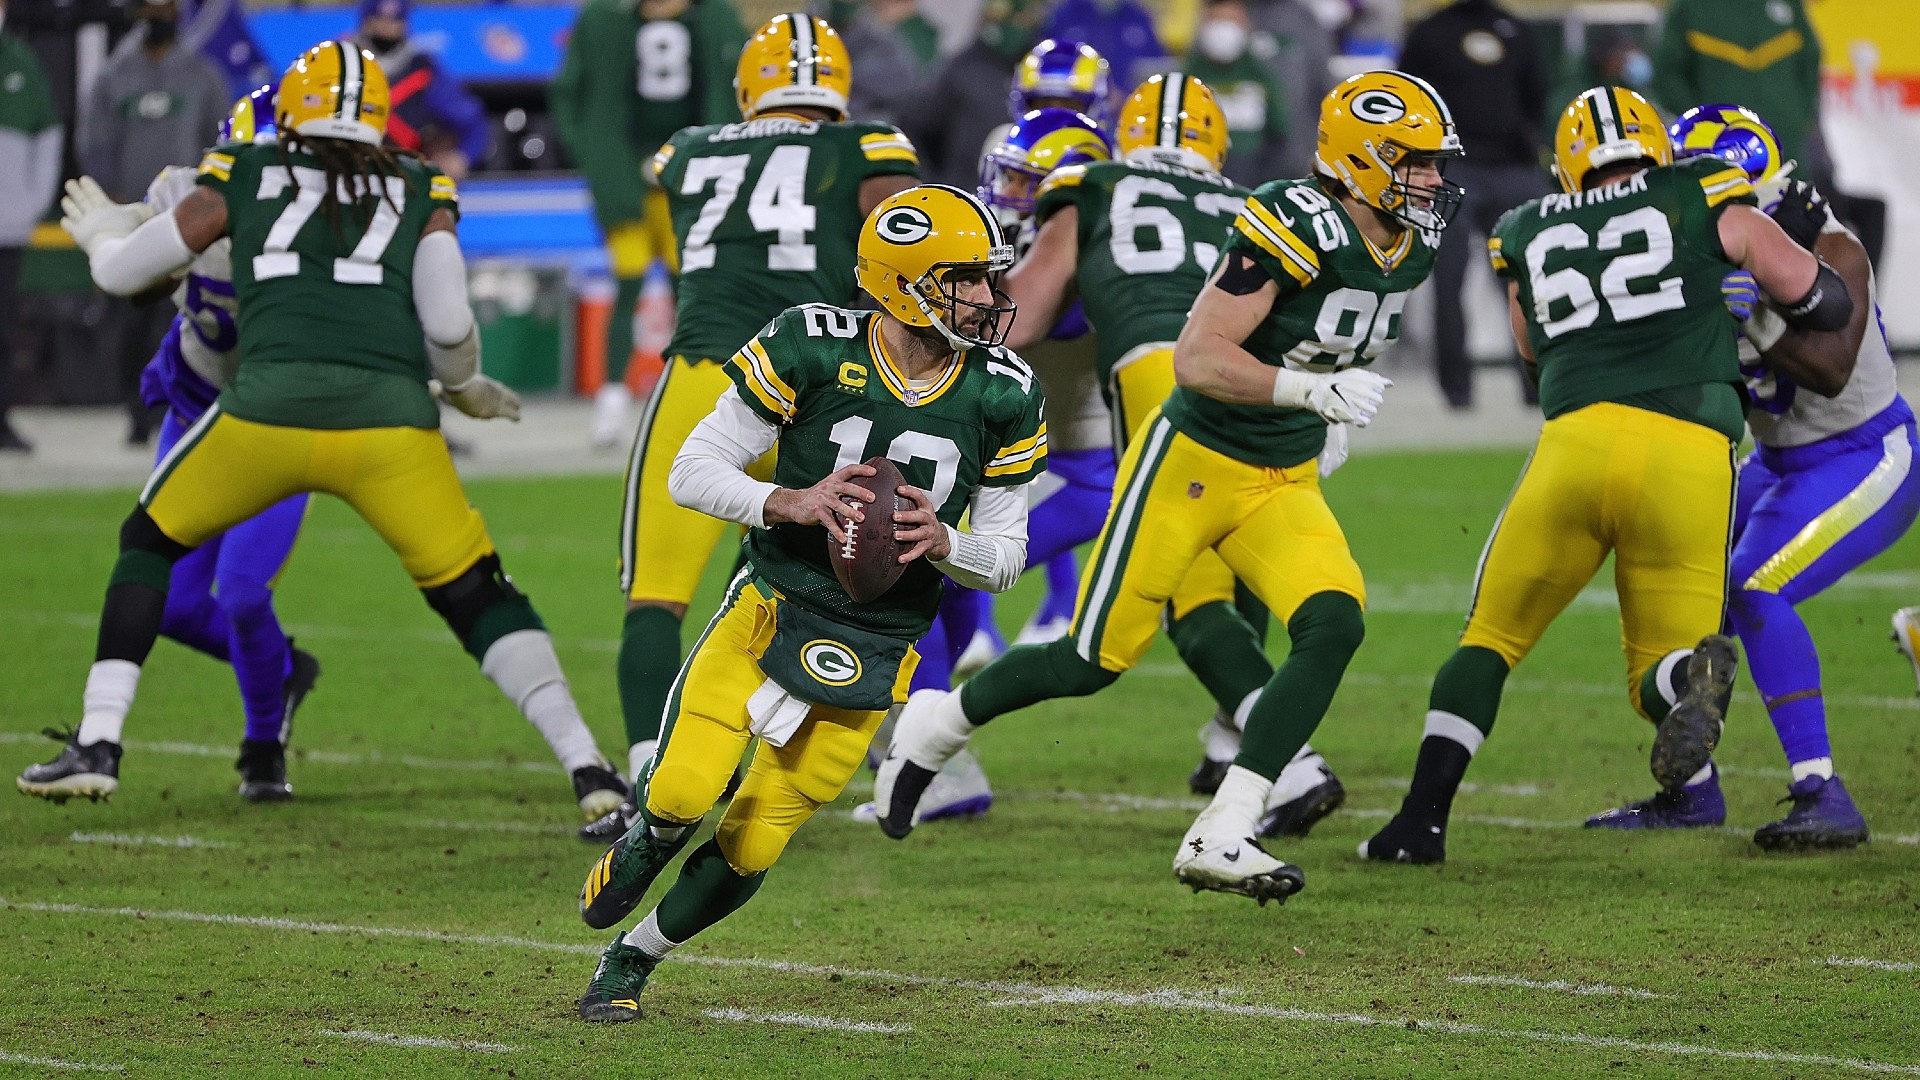 Mike Holmgren blasts Packers for botching Aaron Rodgers situation: 'I wouldn't allow it'